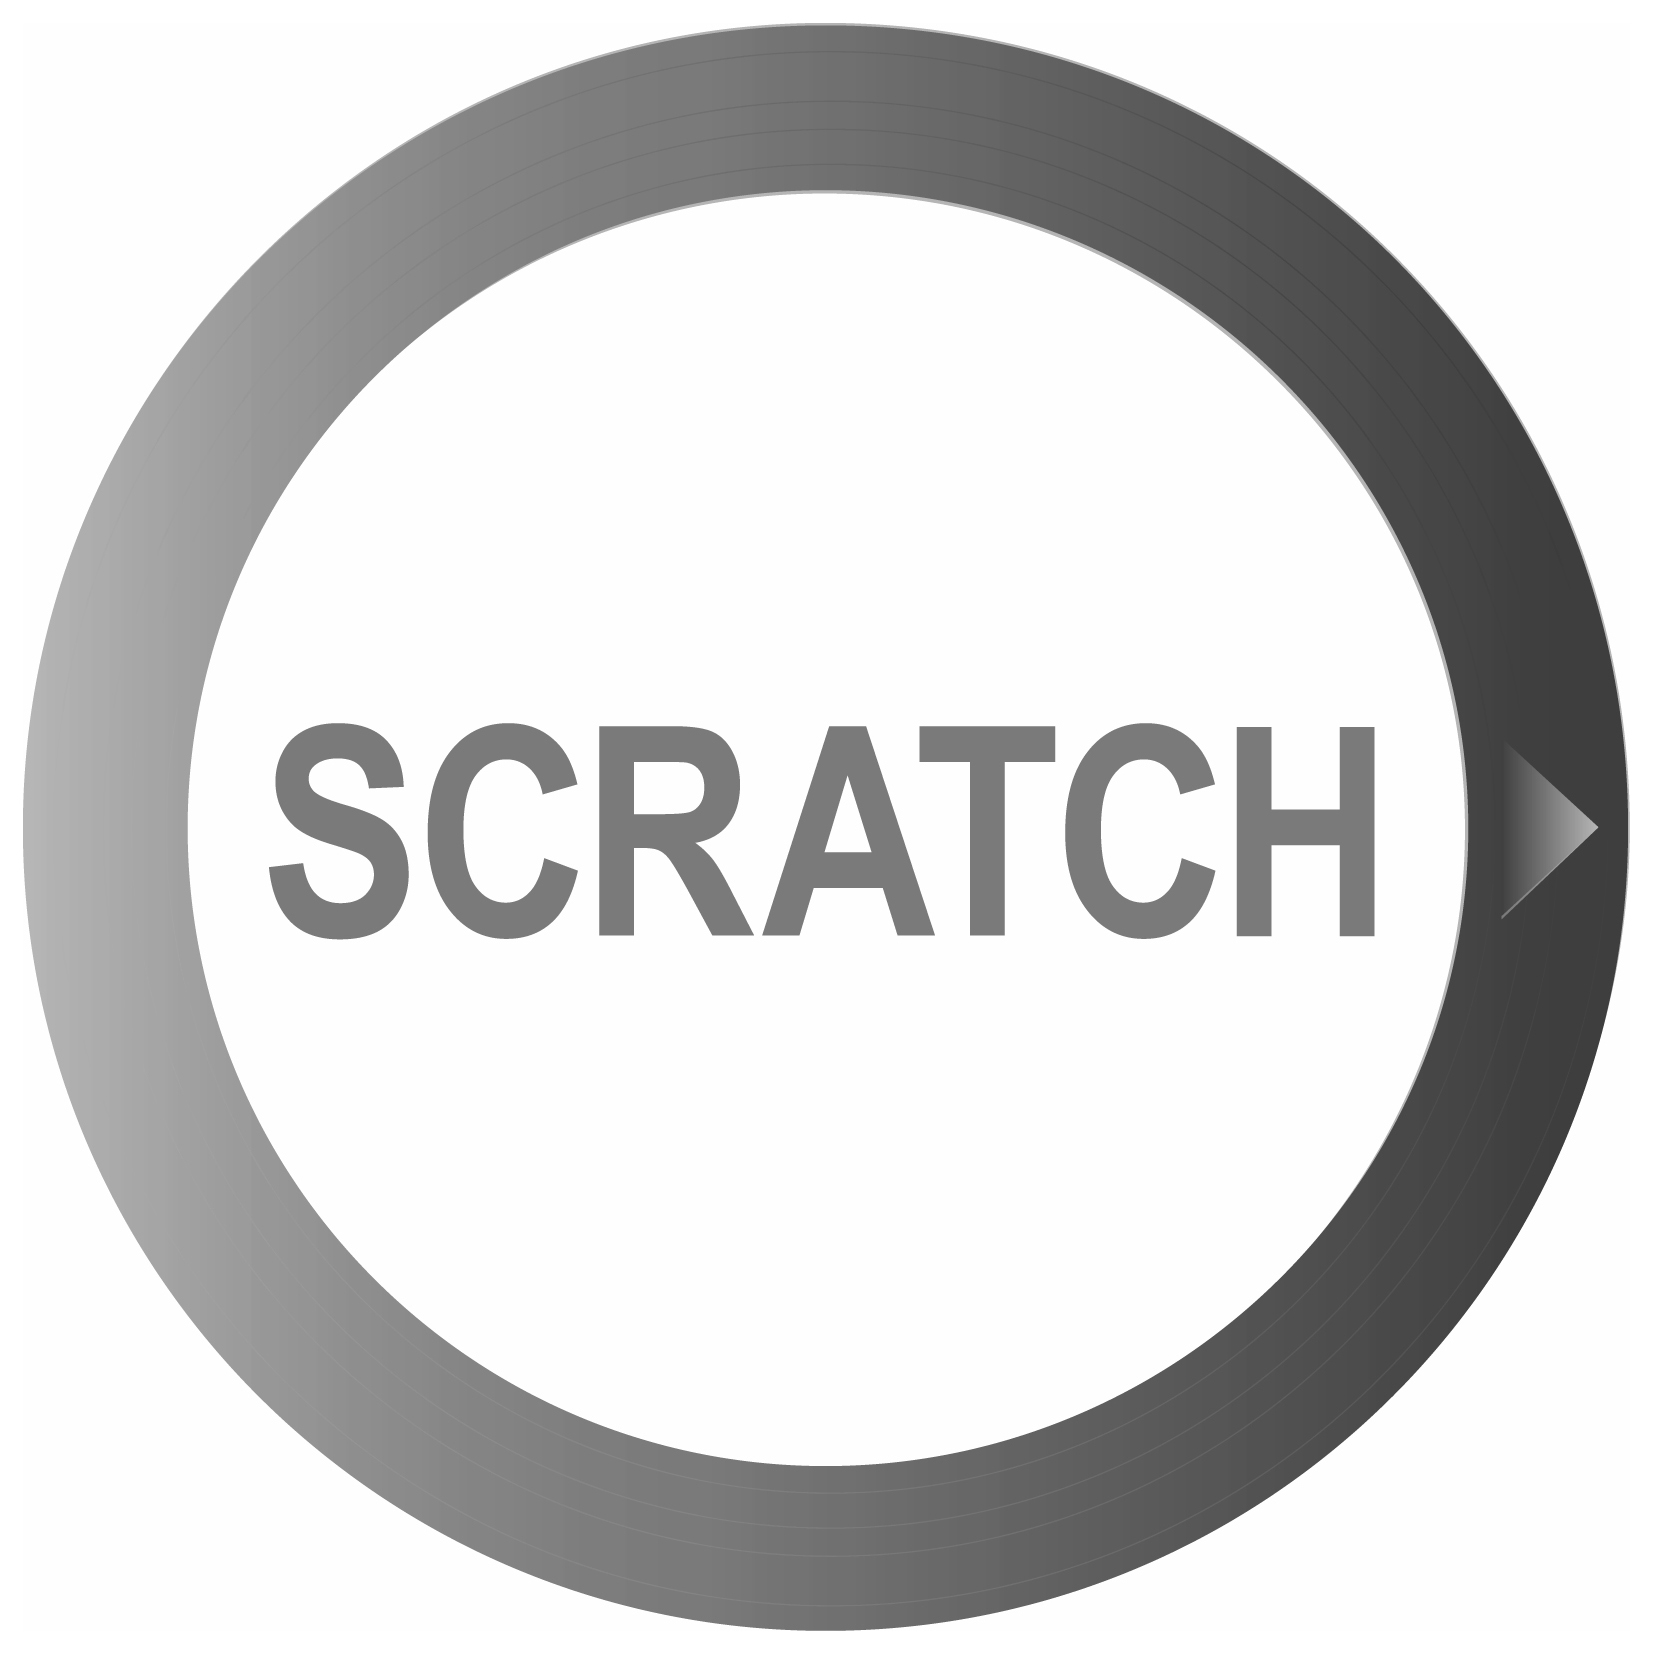 Nnn On 2017 >> ASSIMILATE Announces SCRATCH 8.6 With Major Updates To Entire Product Line | SHOOTonline